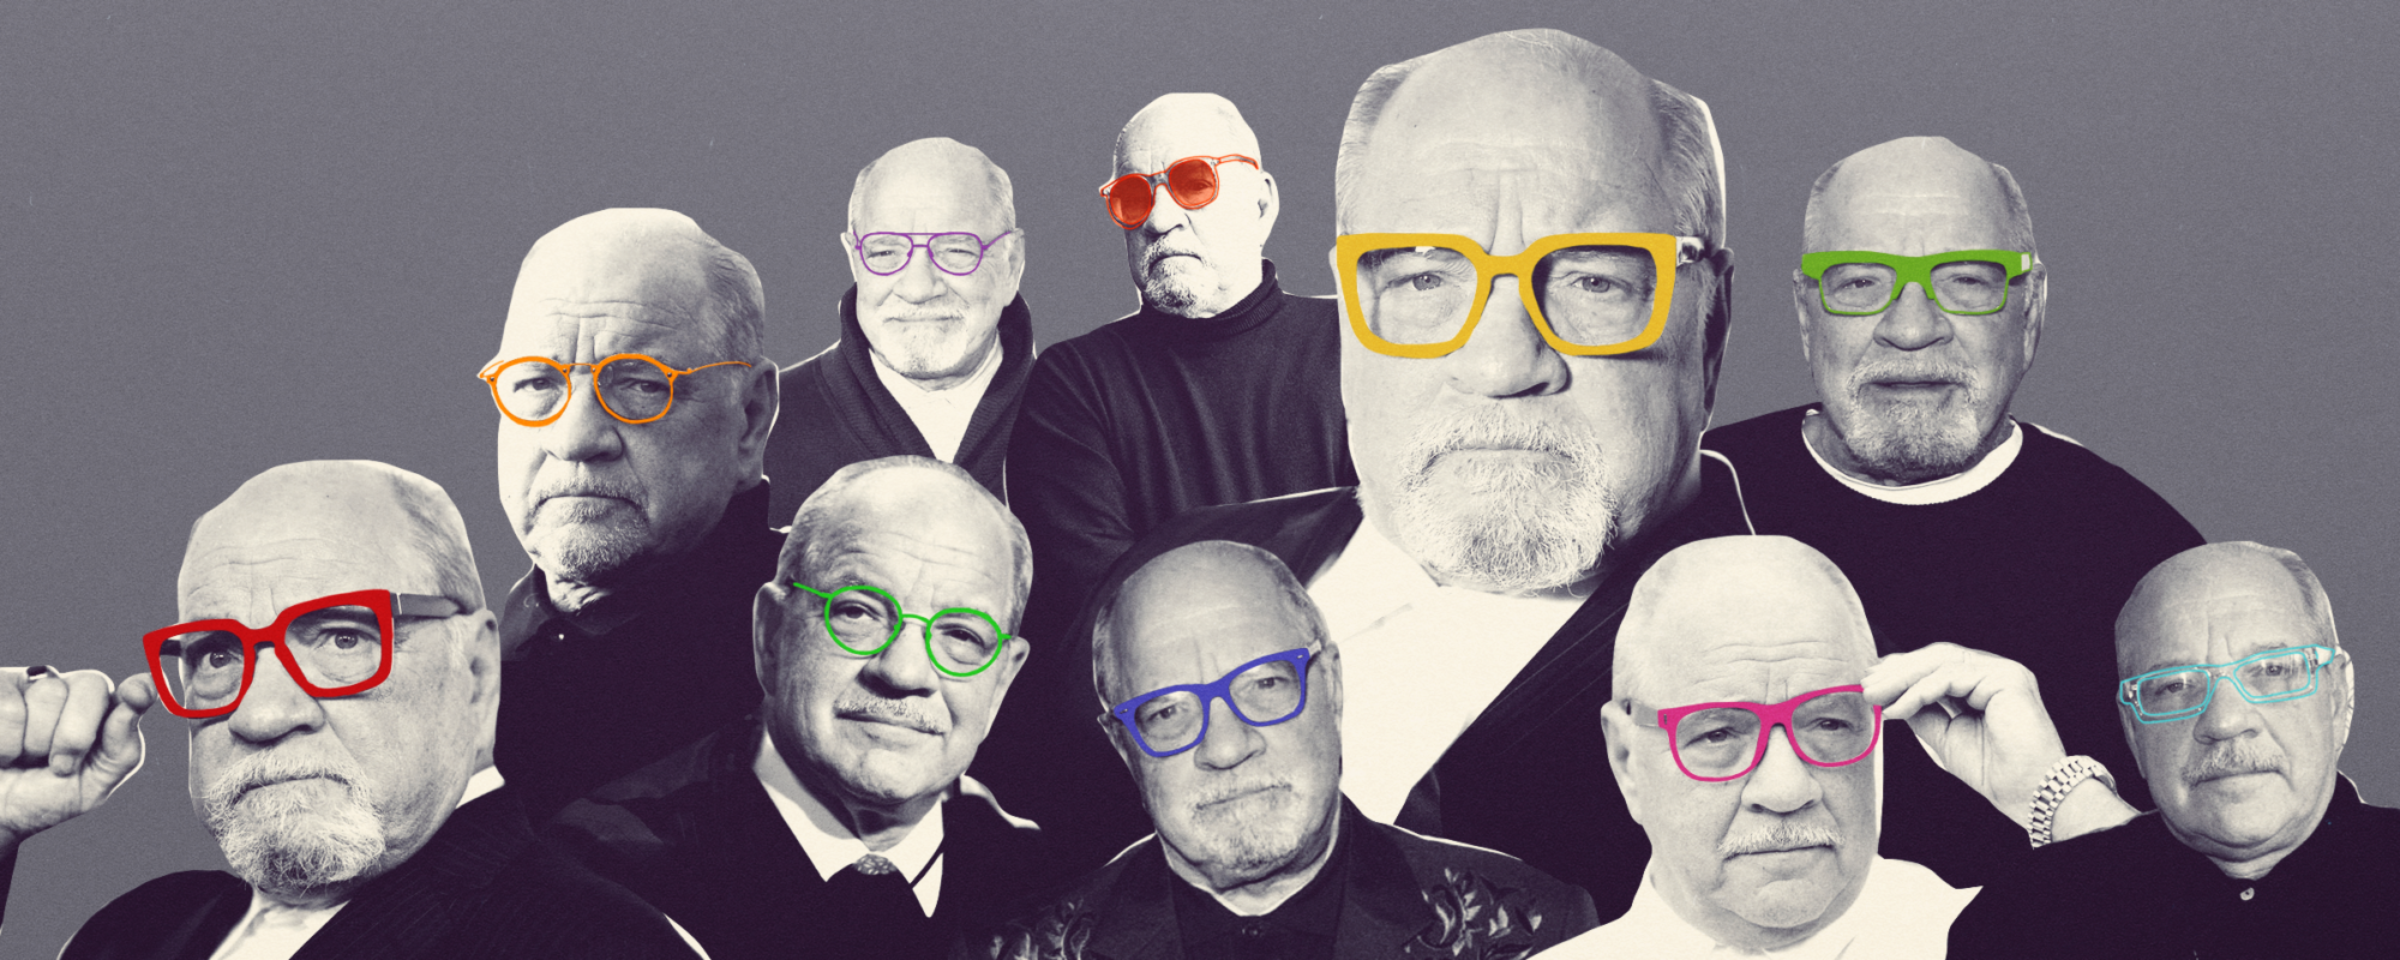 Paul Schrader Glasses Header 2400X960 R02 Ljs